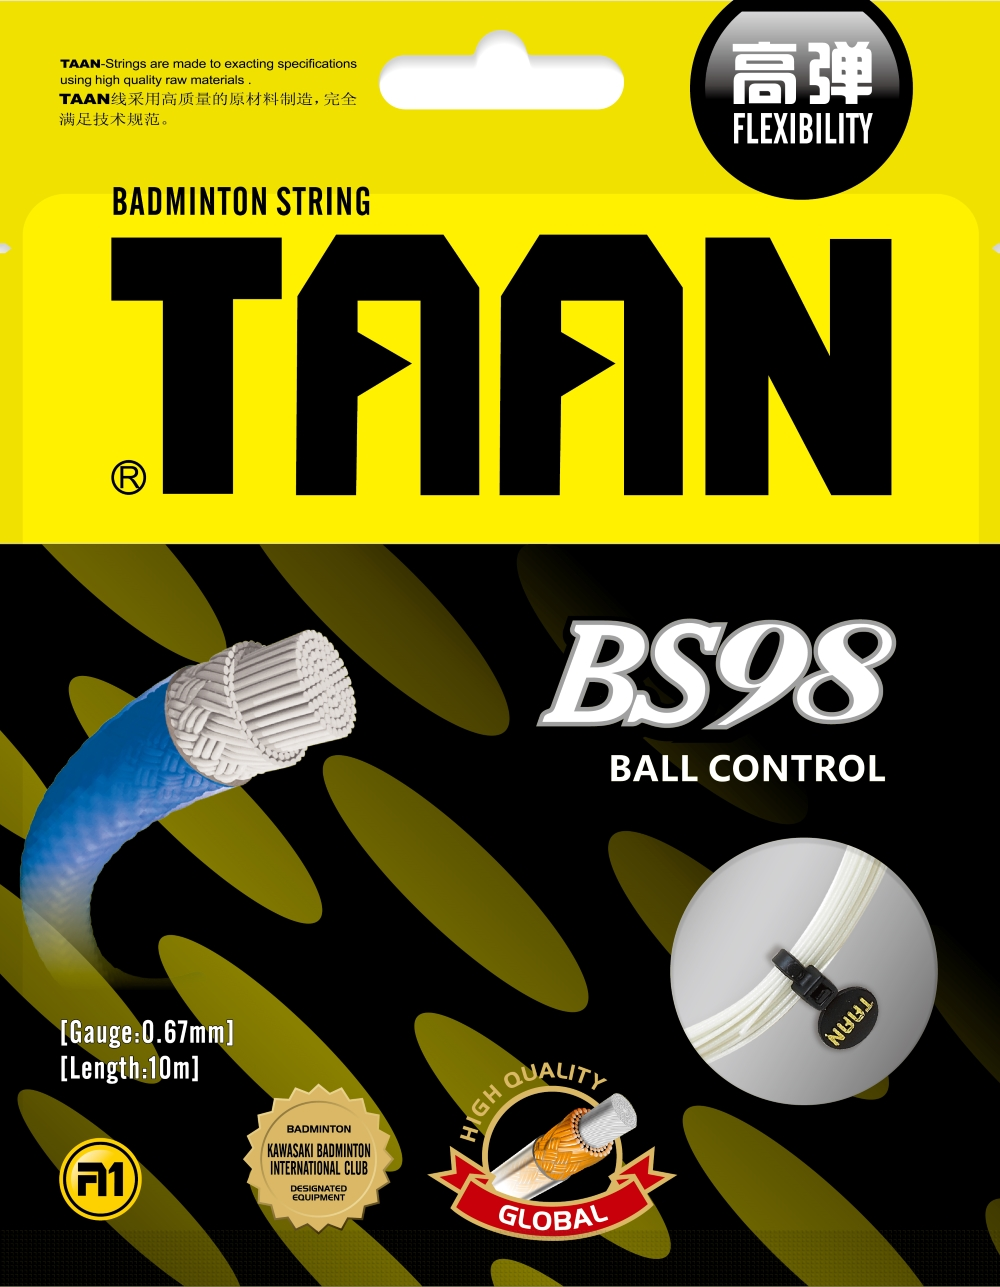 Струна TAAN BS98 BALL CONTROL 0,67мм (длина 10 метров).